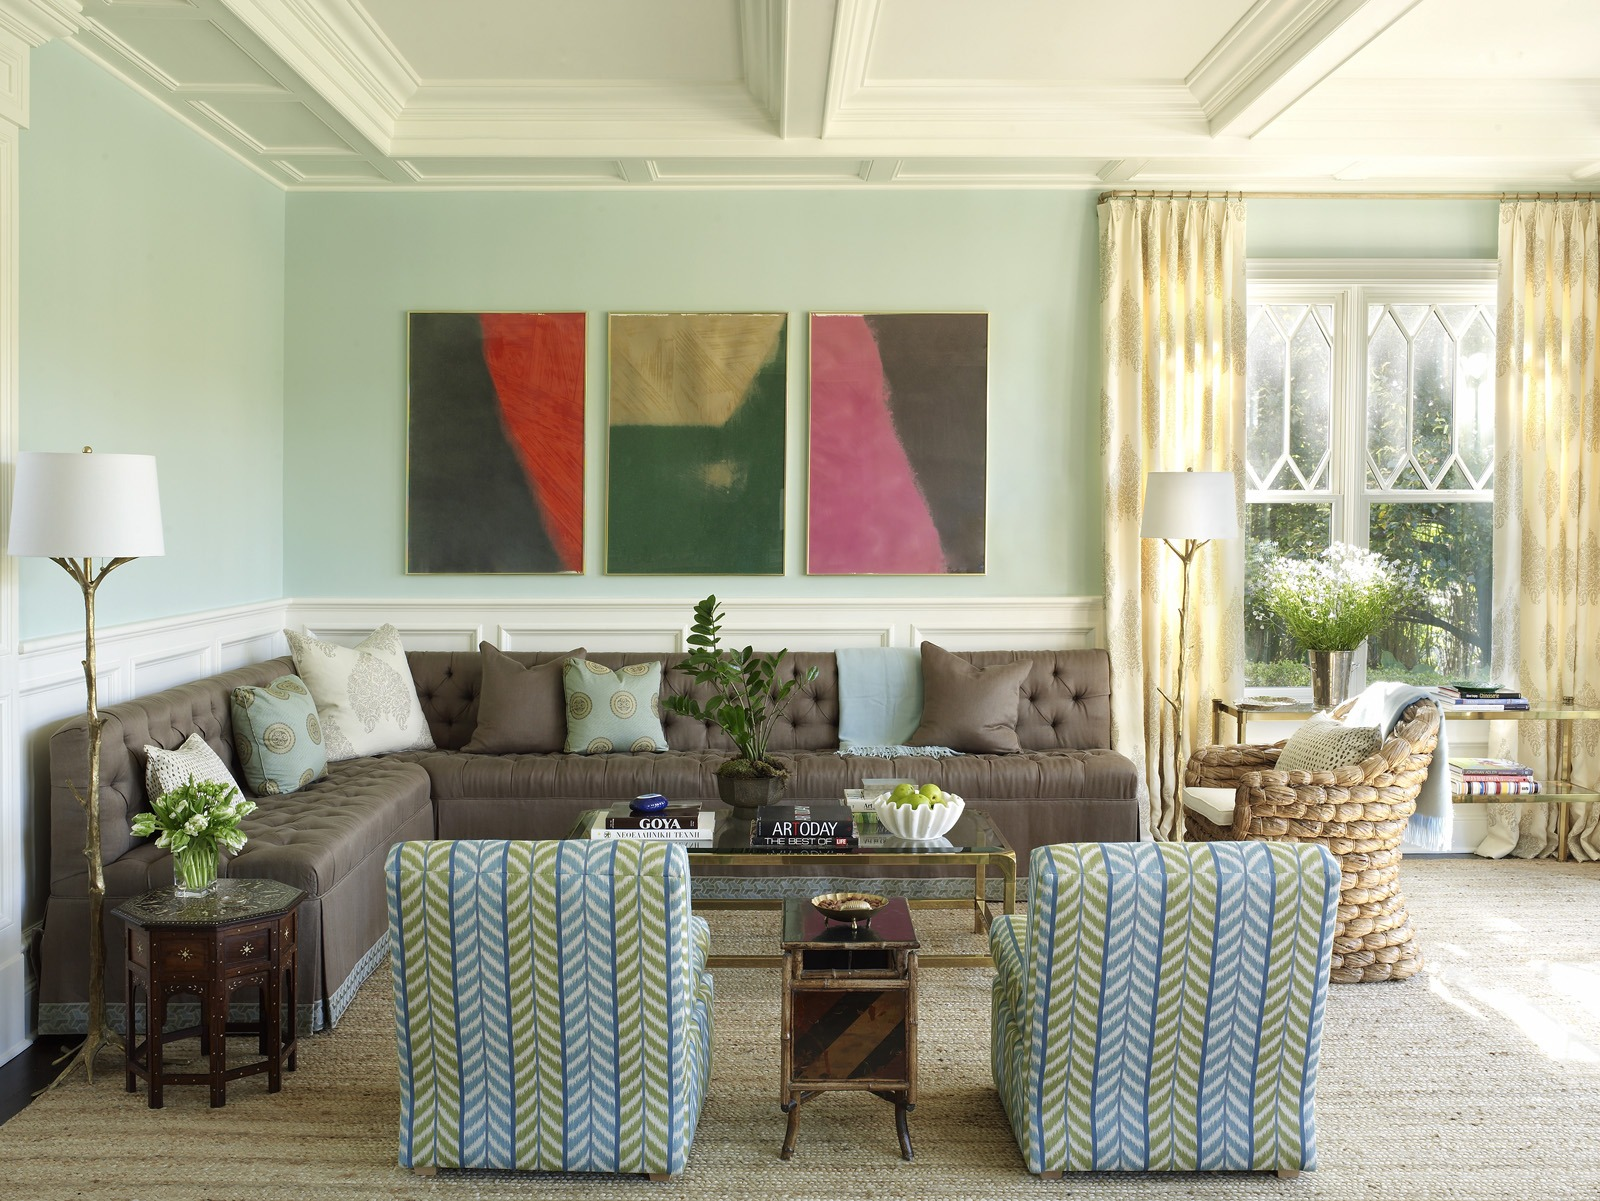 Meg Braff Designs Southampton home living room